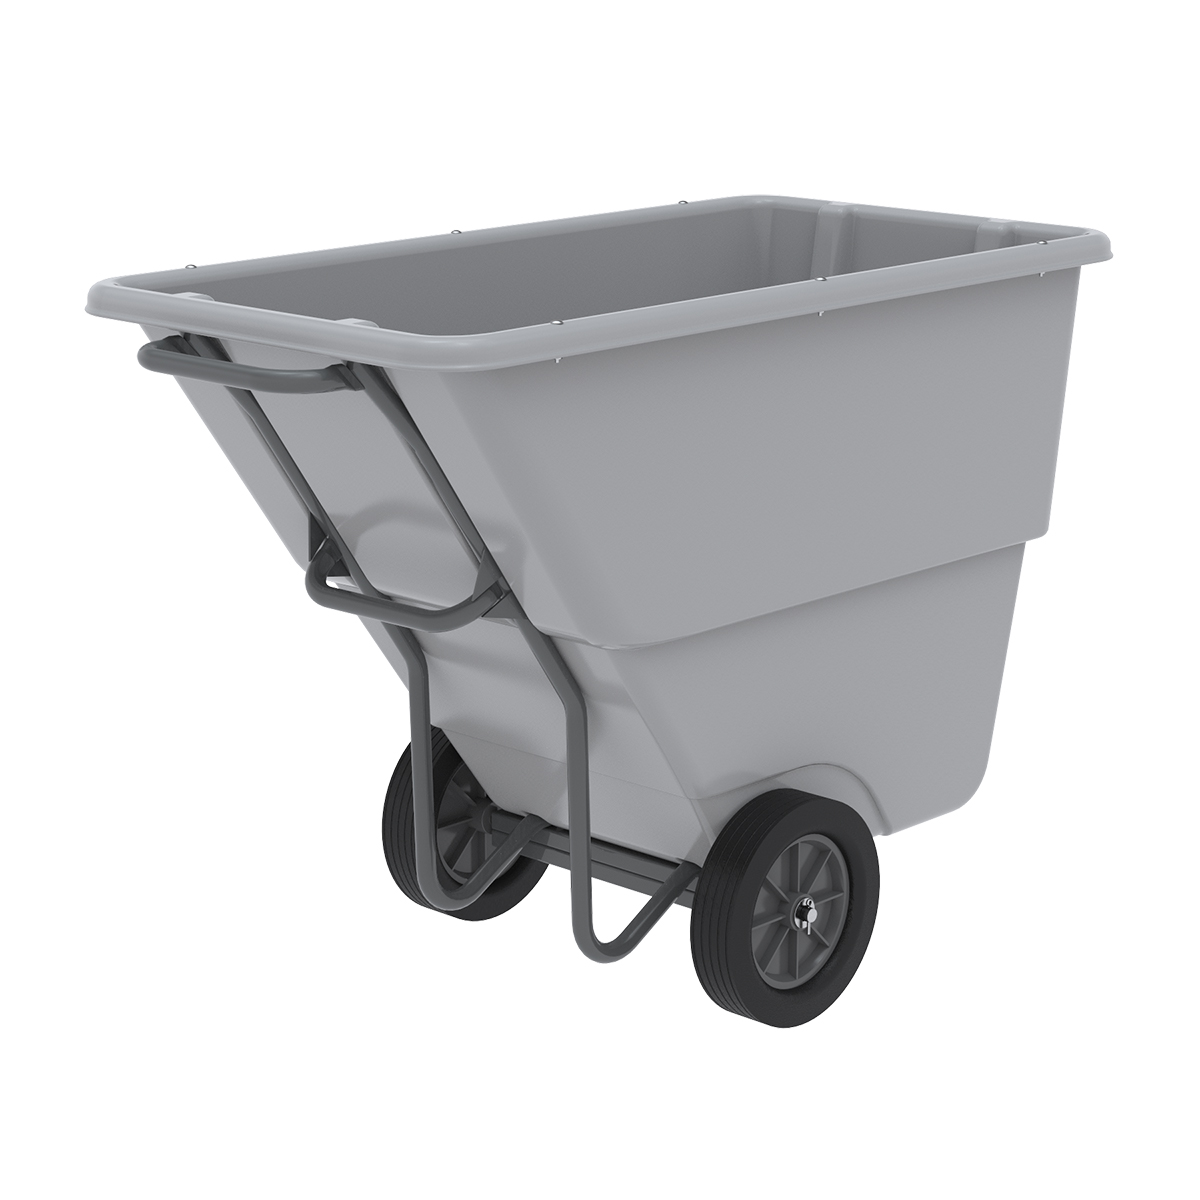 AKRO-TILT TRUCK, MEDIUM DUTY, 100GAL - 1/2 YD.  This item sold in carton quantities of 1.